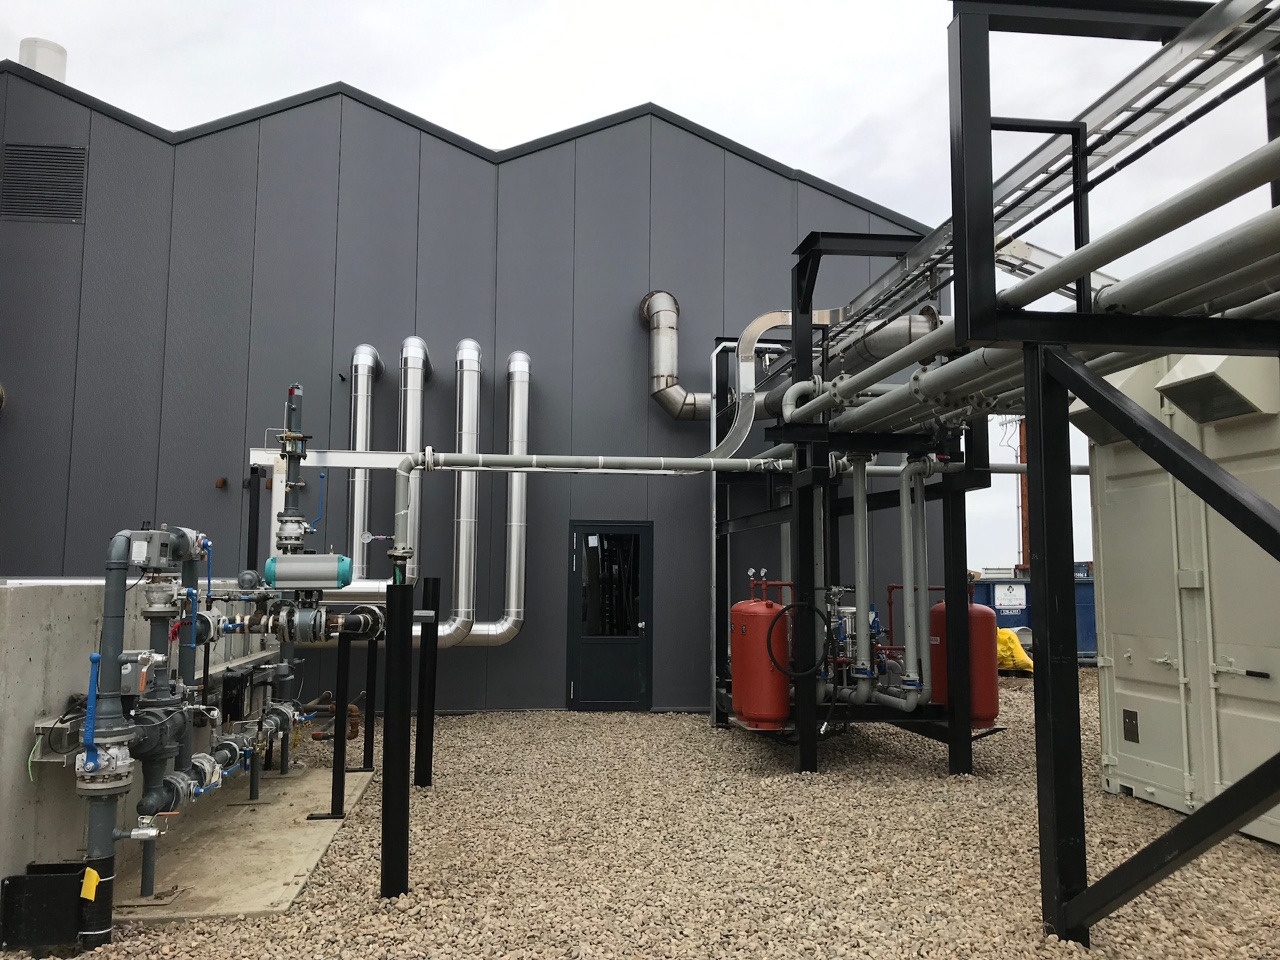 2019-04-09 piping into Greenhouse.JPG